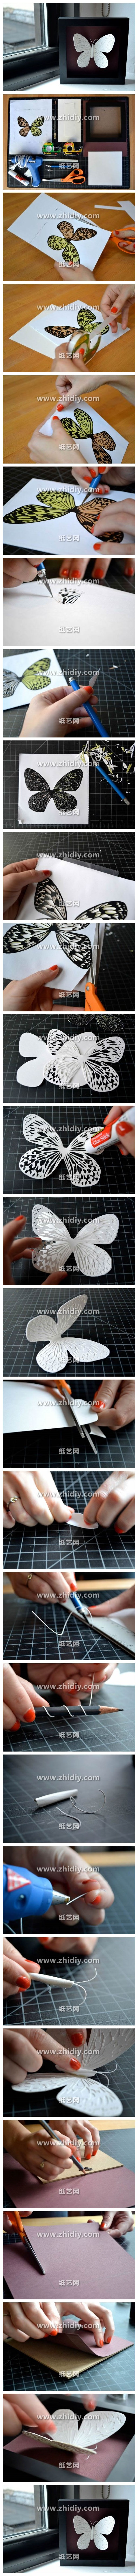 How to make beautiful DIY 3D butterfly gifts for mothers day step by step tutorial instructions